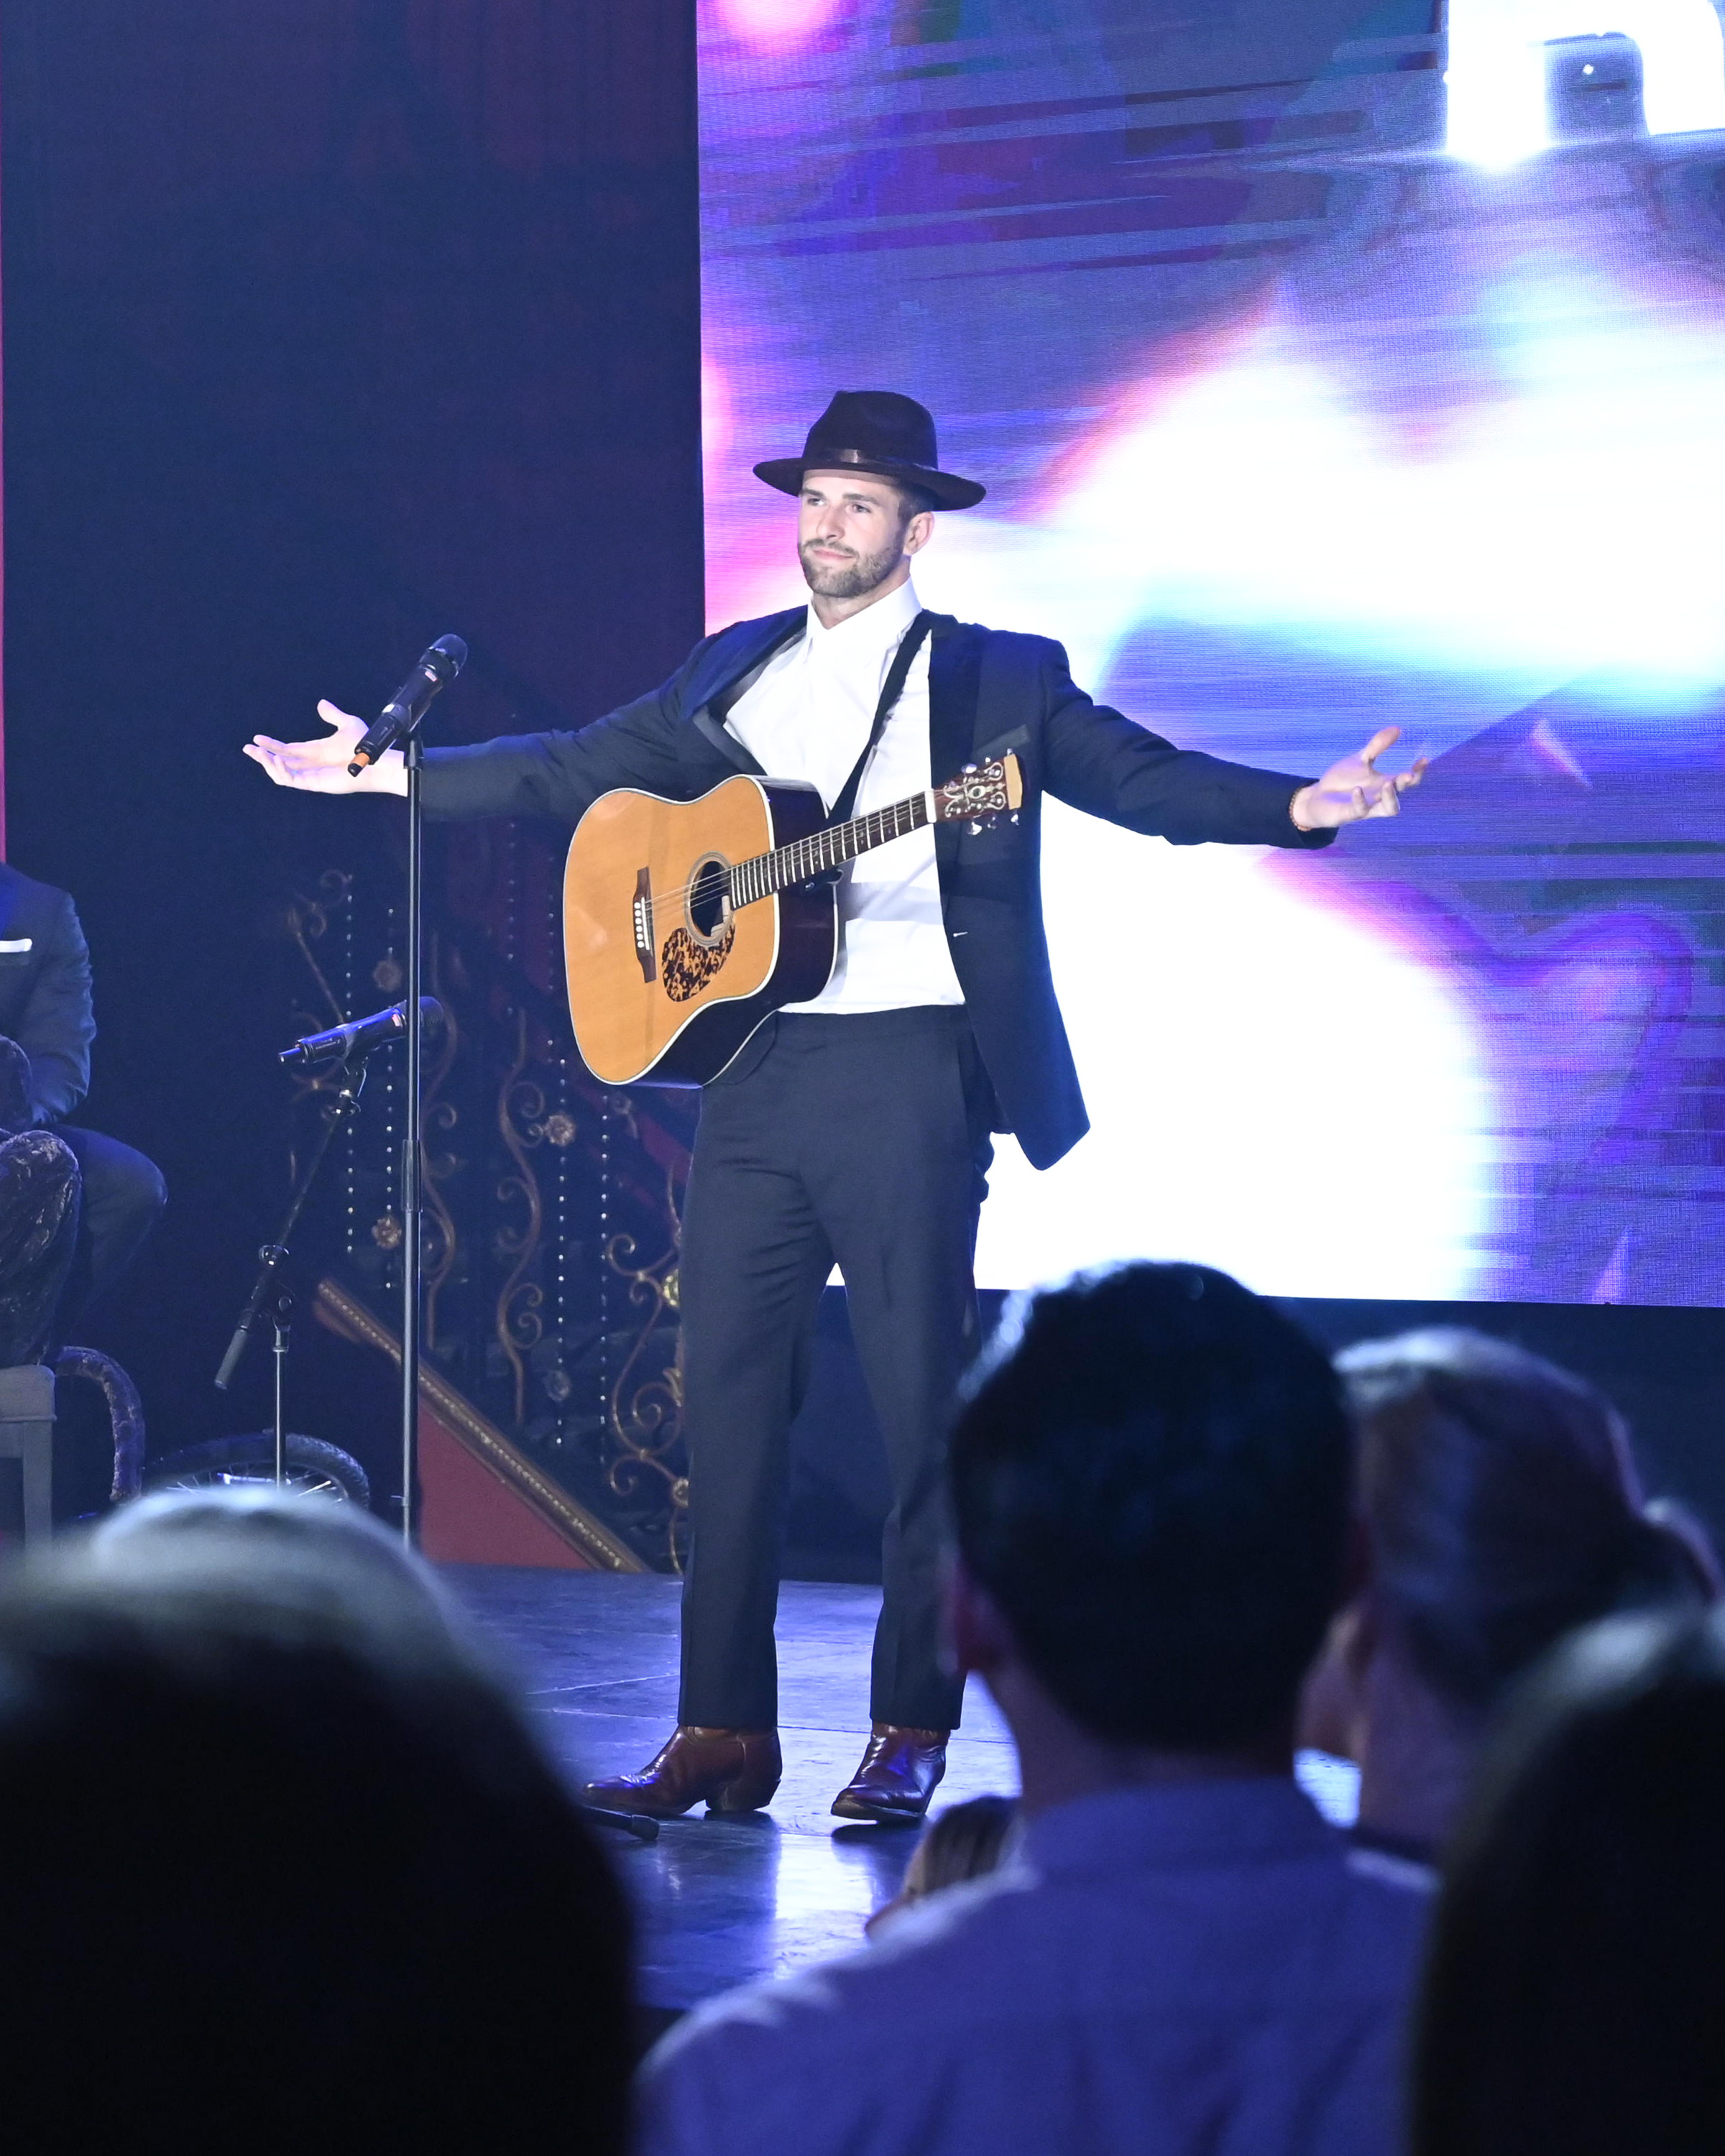 And of course, Jed the singer/songwriter would have to take advantage of any opportunity on a stage! He has a brand to grow after all. But is he only there for brand growth, or is there for the right reasons? We will just have to keep tuning in to season 15 to find out! (Image: John Fleenor/ ABC)